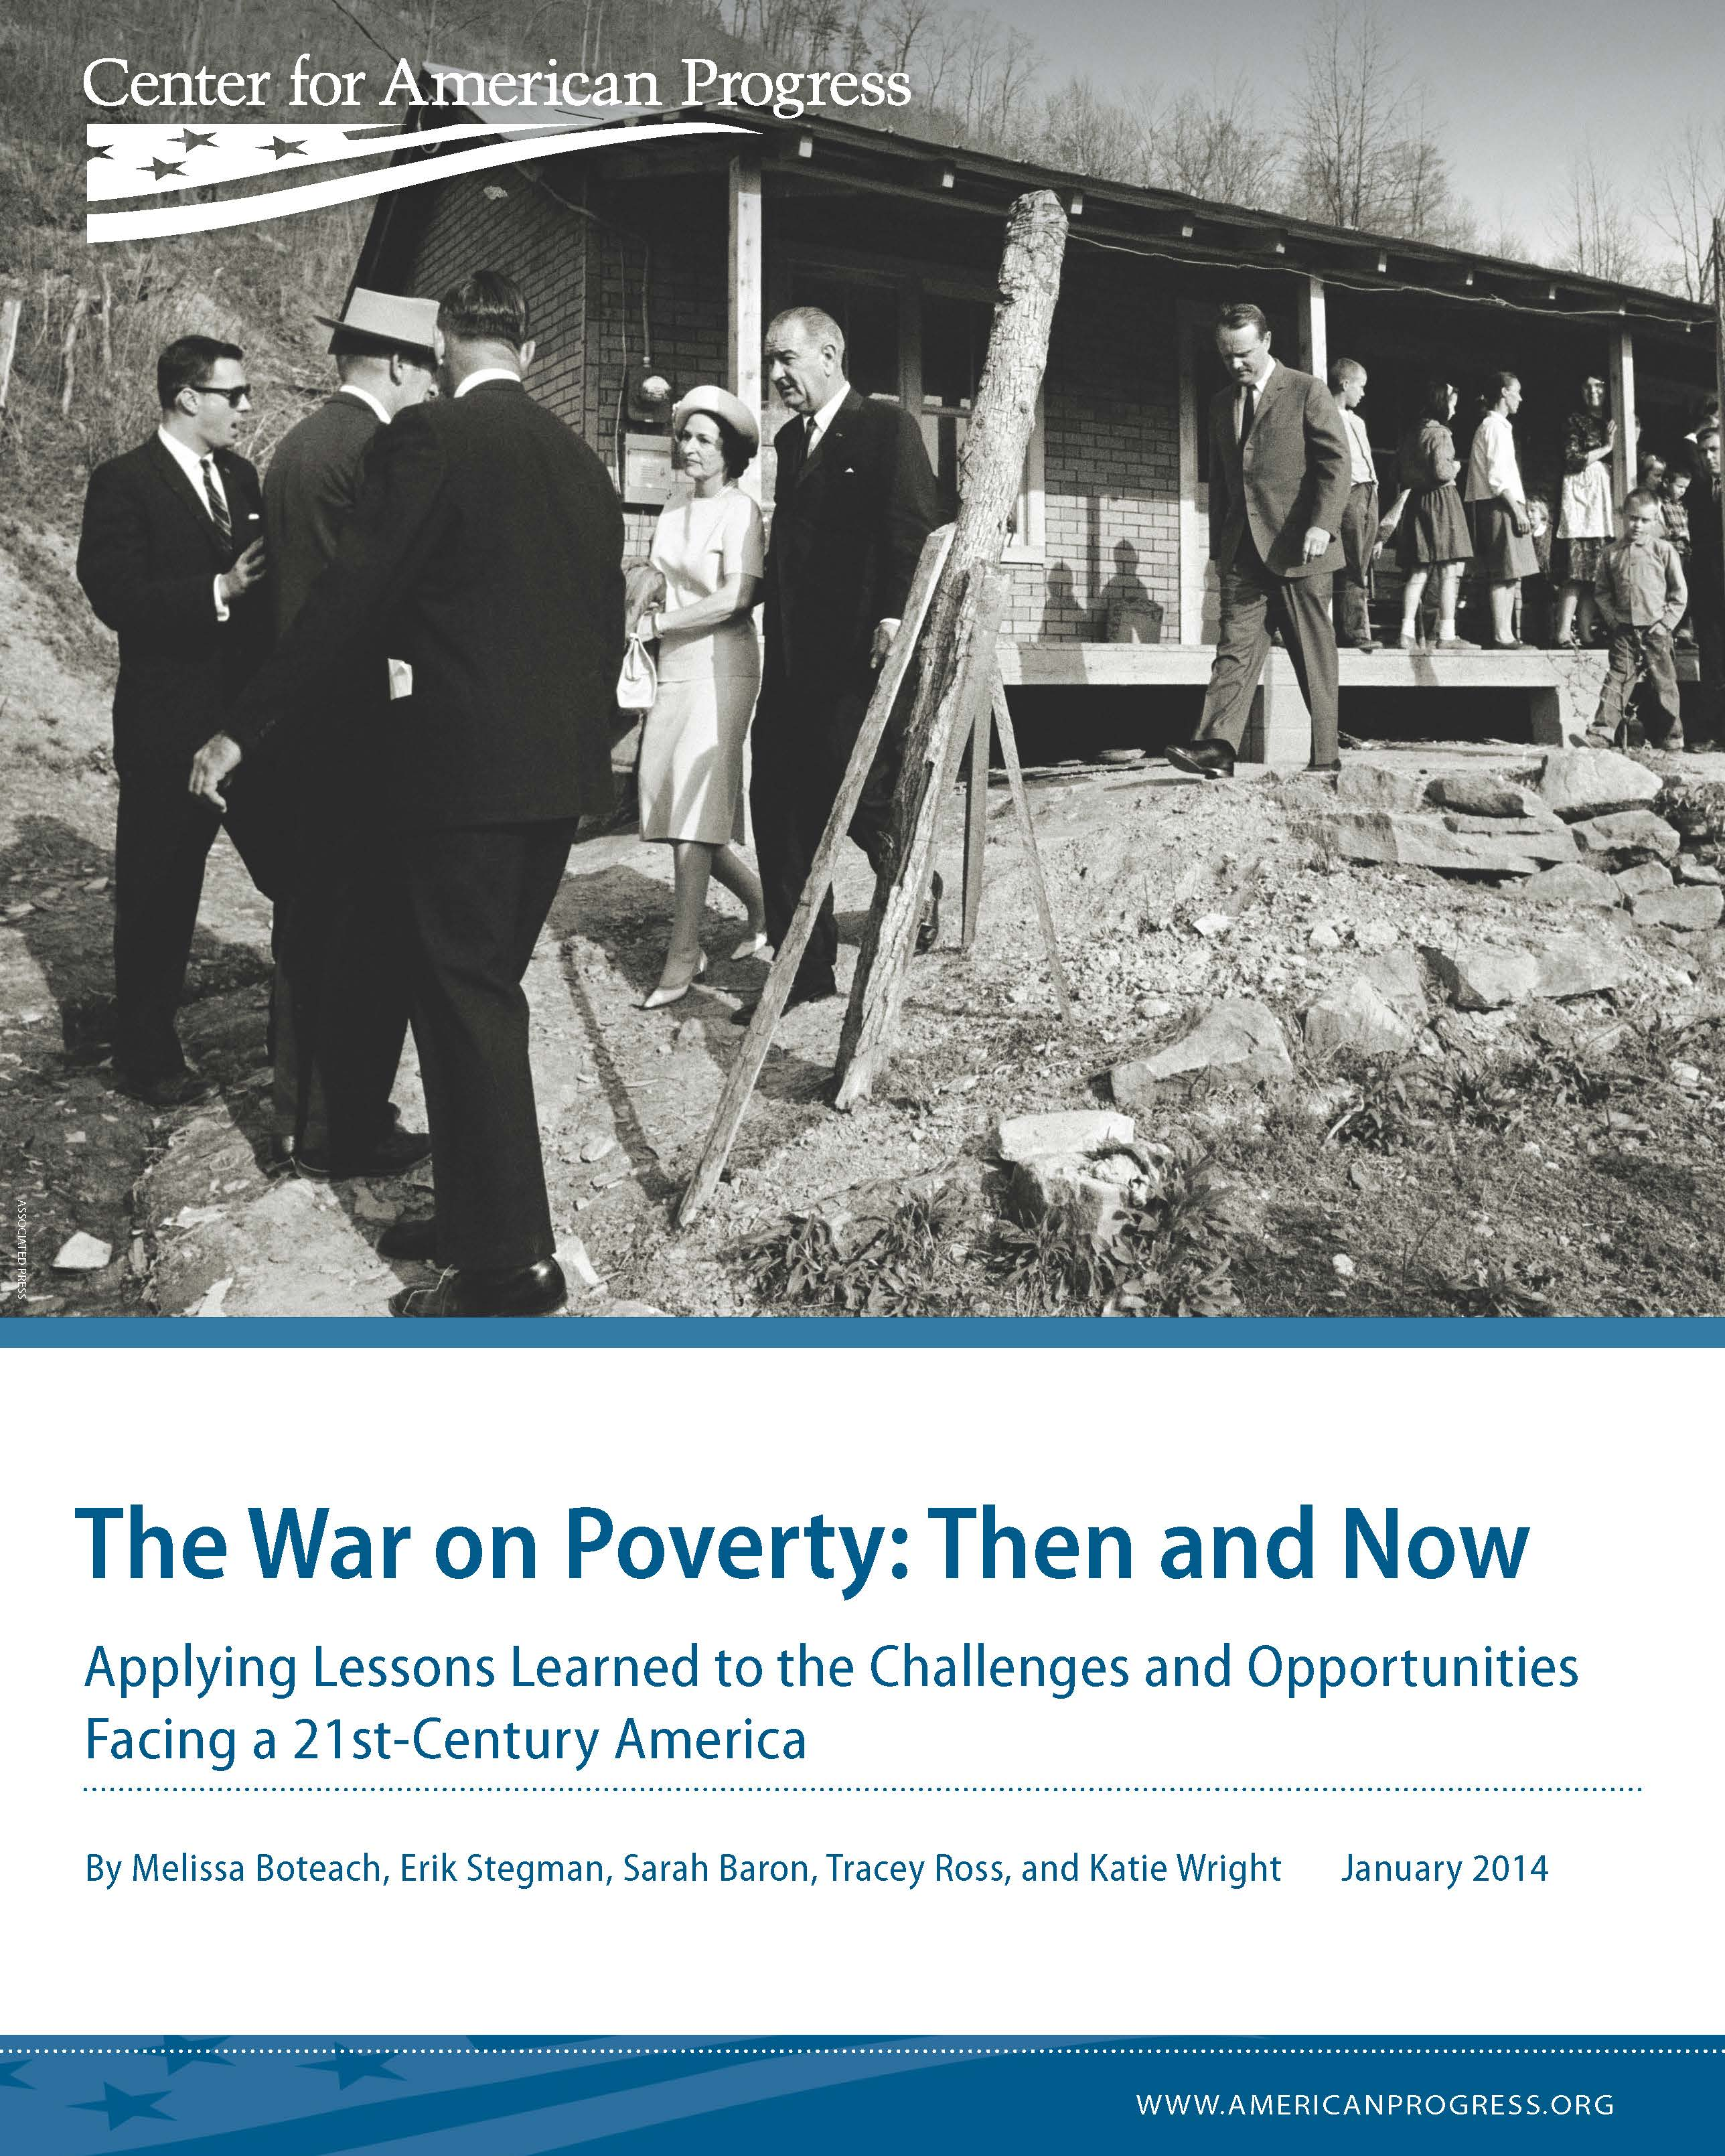 The War on Poverty: Then and Now